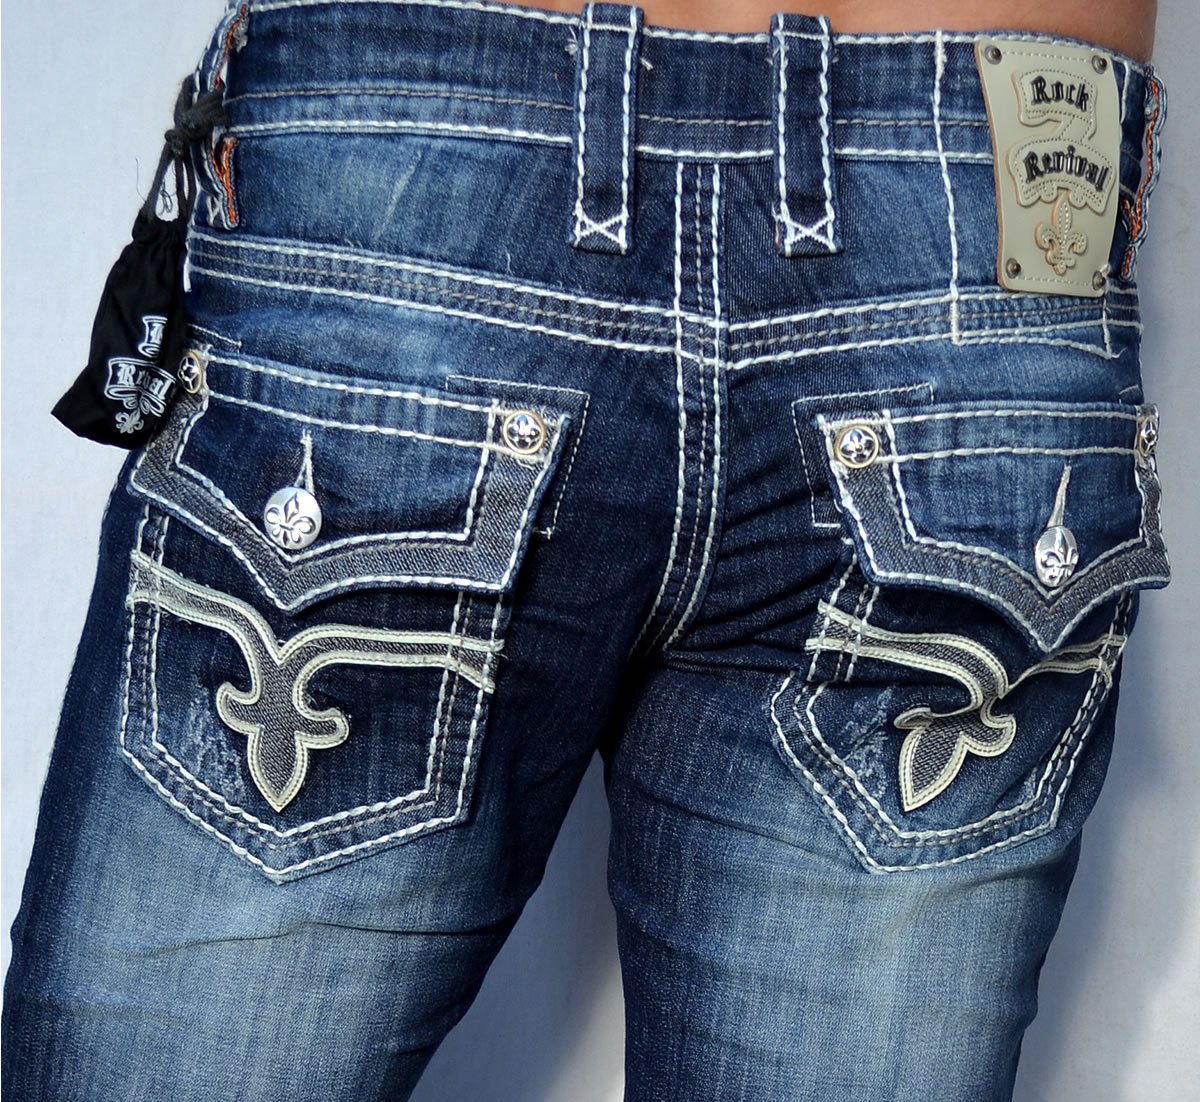 Best Stylish Jeans - Clothing Brands For a Chic Look ...